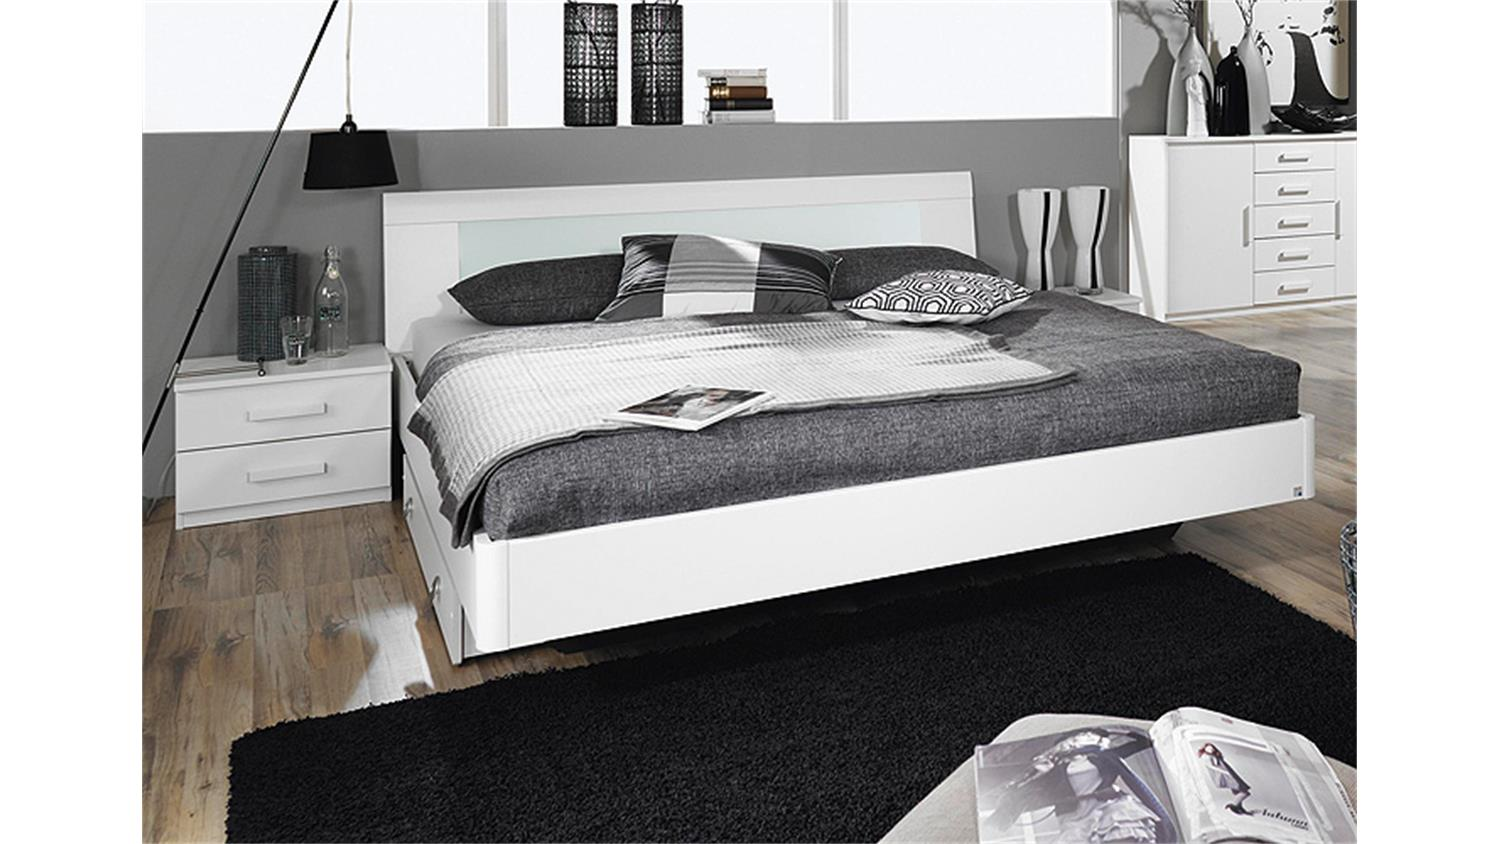 bettanlage narbonne schlafzimmer in wei dekor 180x200 cm. Black Bedroom Furniture Sets. Home Design Ideas